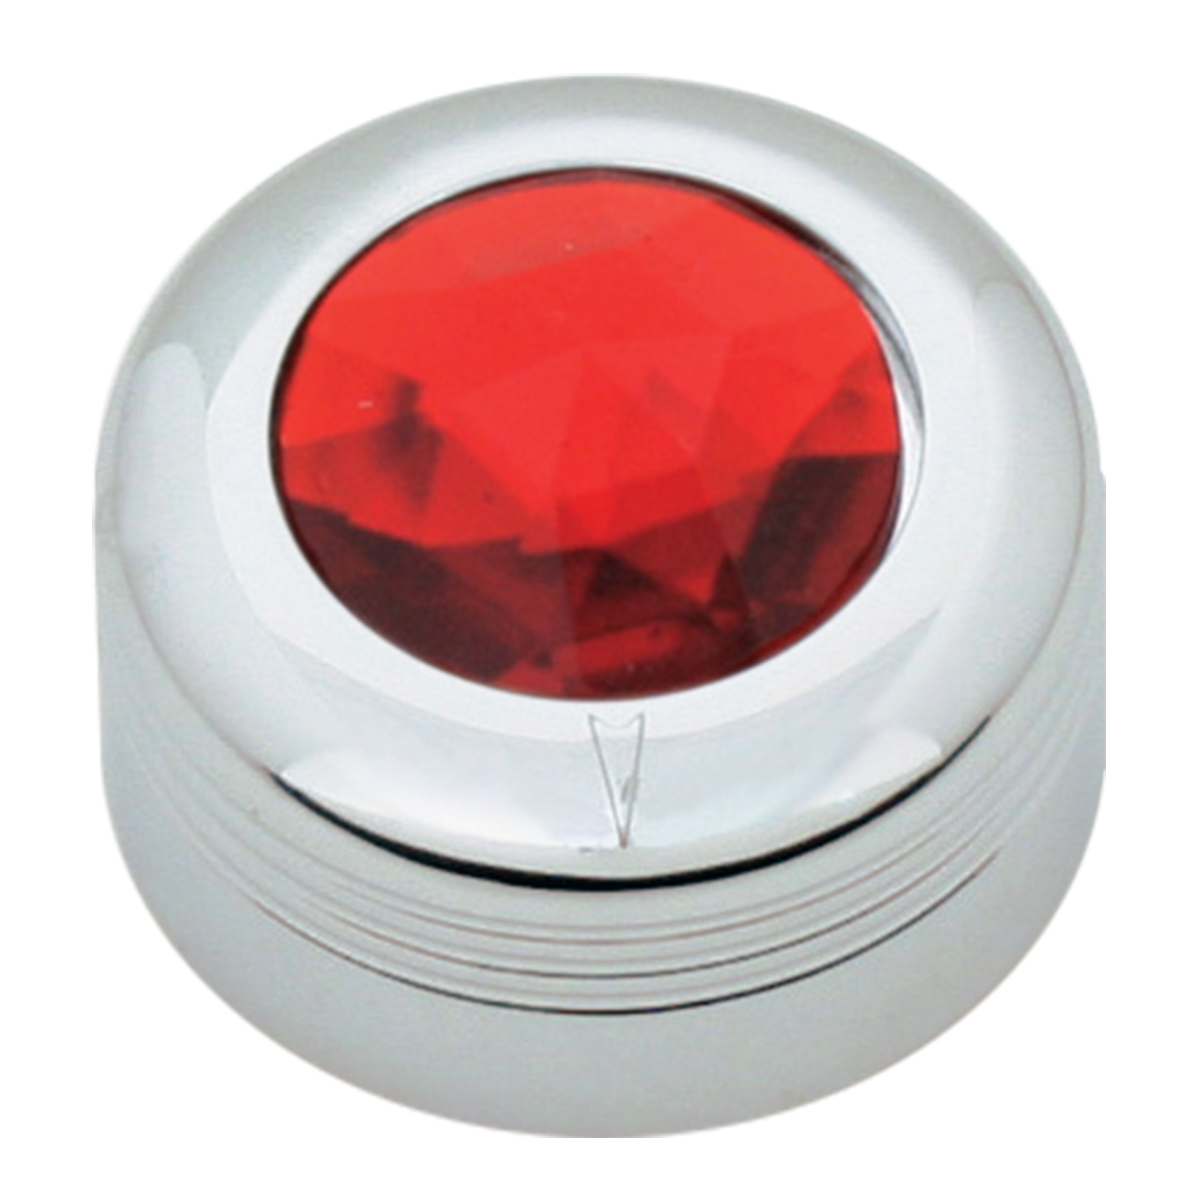 Chrome Plastic A/C Knob w/ Red Plastic Crystal for Pete